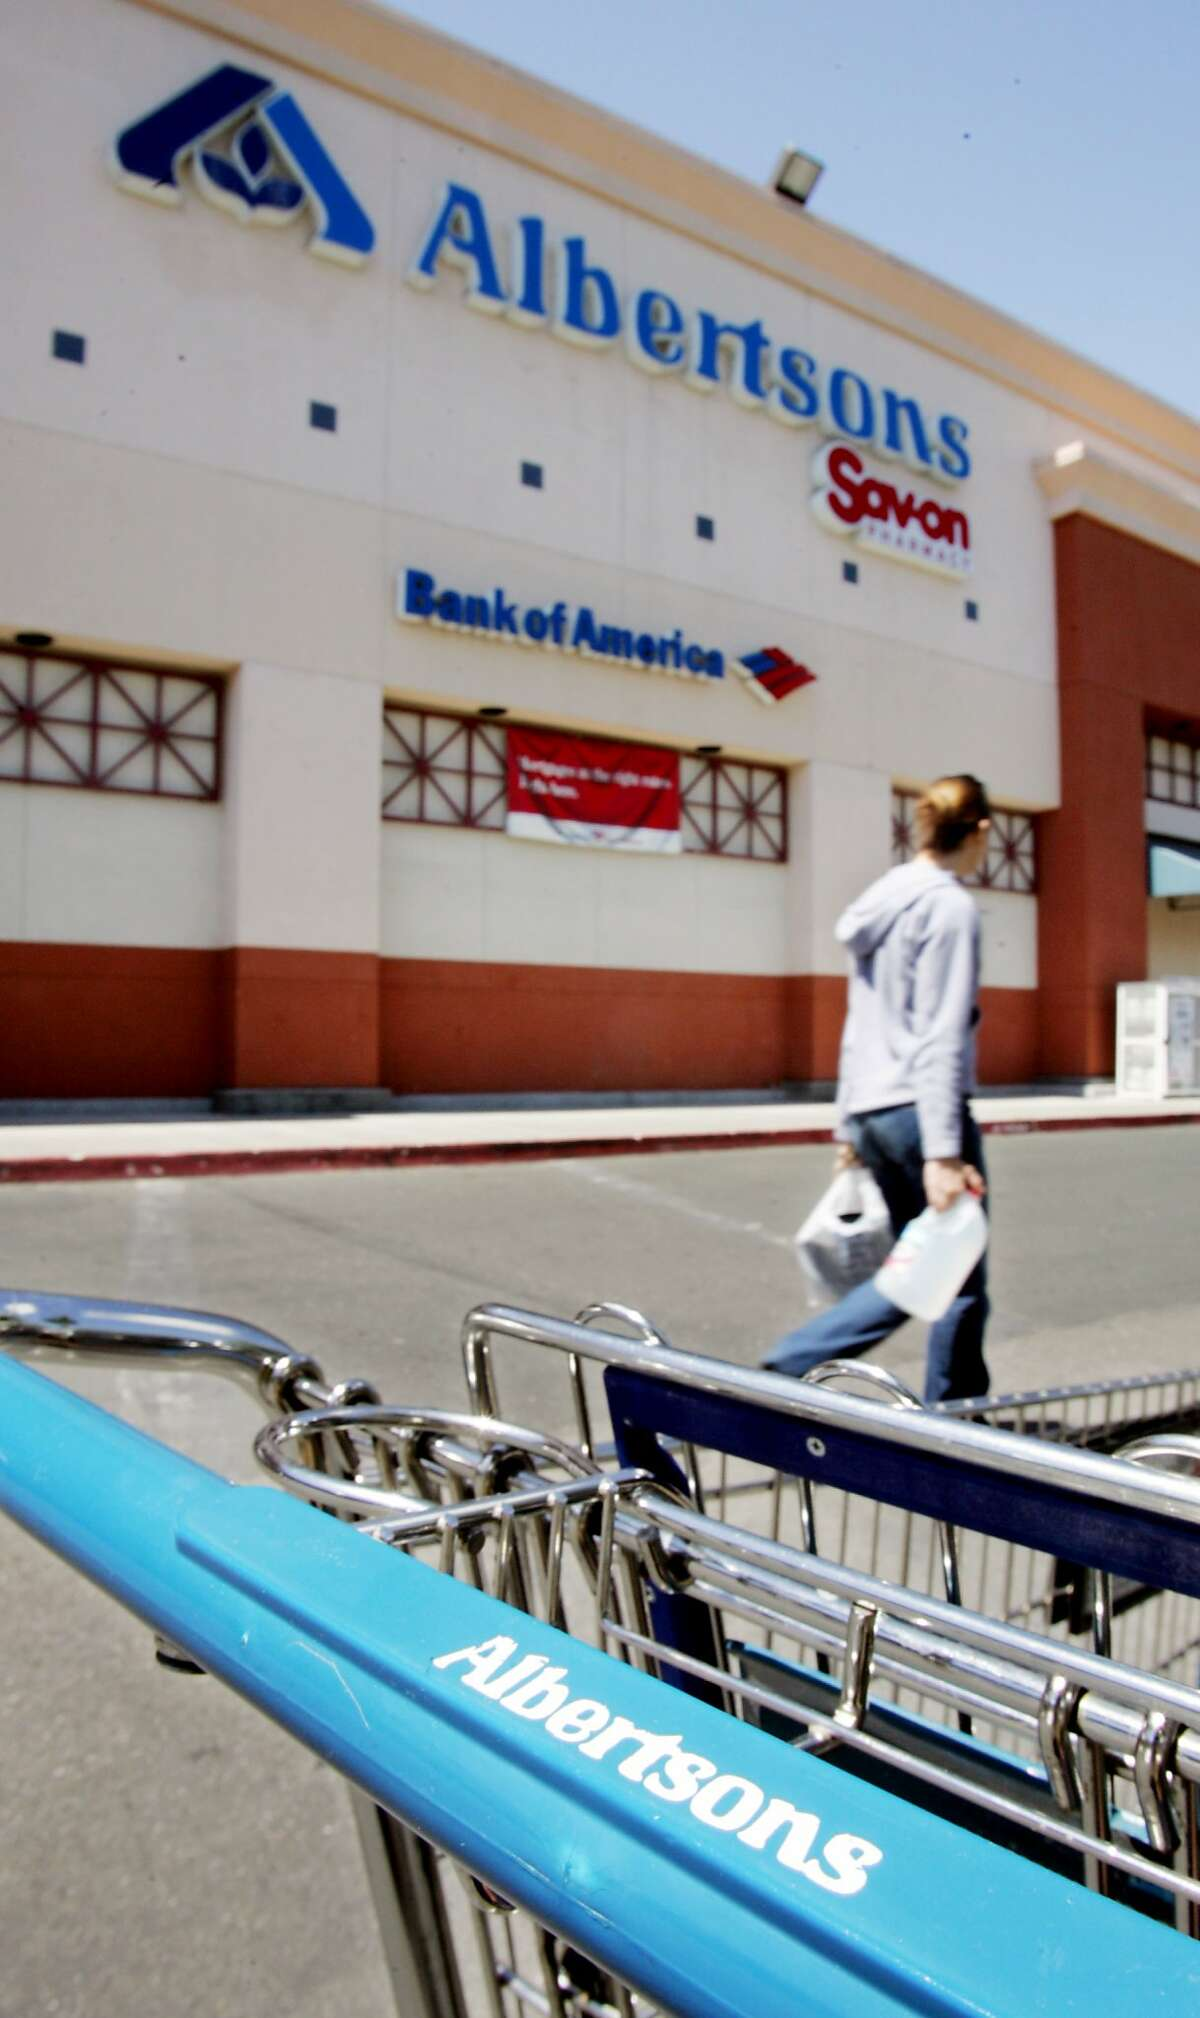 An Albertson's shopper leaves a Albertson's supermarket in Mountain View, Calif., Tuesday, May 30, 2006. (Address is 2535 California Street which is on the list of stores closing) Albertson's Inc., the nation's second-largest traditional supermarket chain behind Kroger Co., said Tuesday, its fiscal first-quarter earnings rose 67 percent, helped by a one-time gain for pension curtailments. (AP Photo/Paul Sakuma) Ran on: 06-08-2006 A shopper leaves an Albertsons store in Mountain View, one of 37 Northern California outlets scheduled to be closed by the chain's new owners between now and early August.